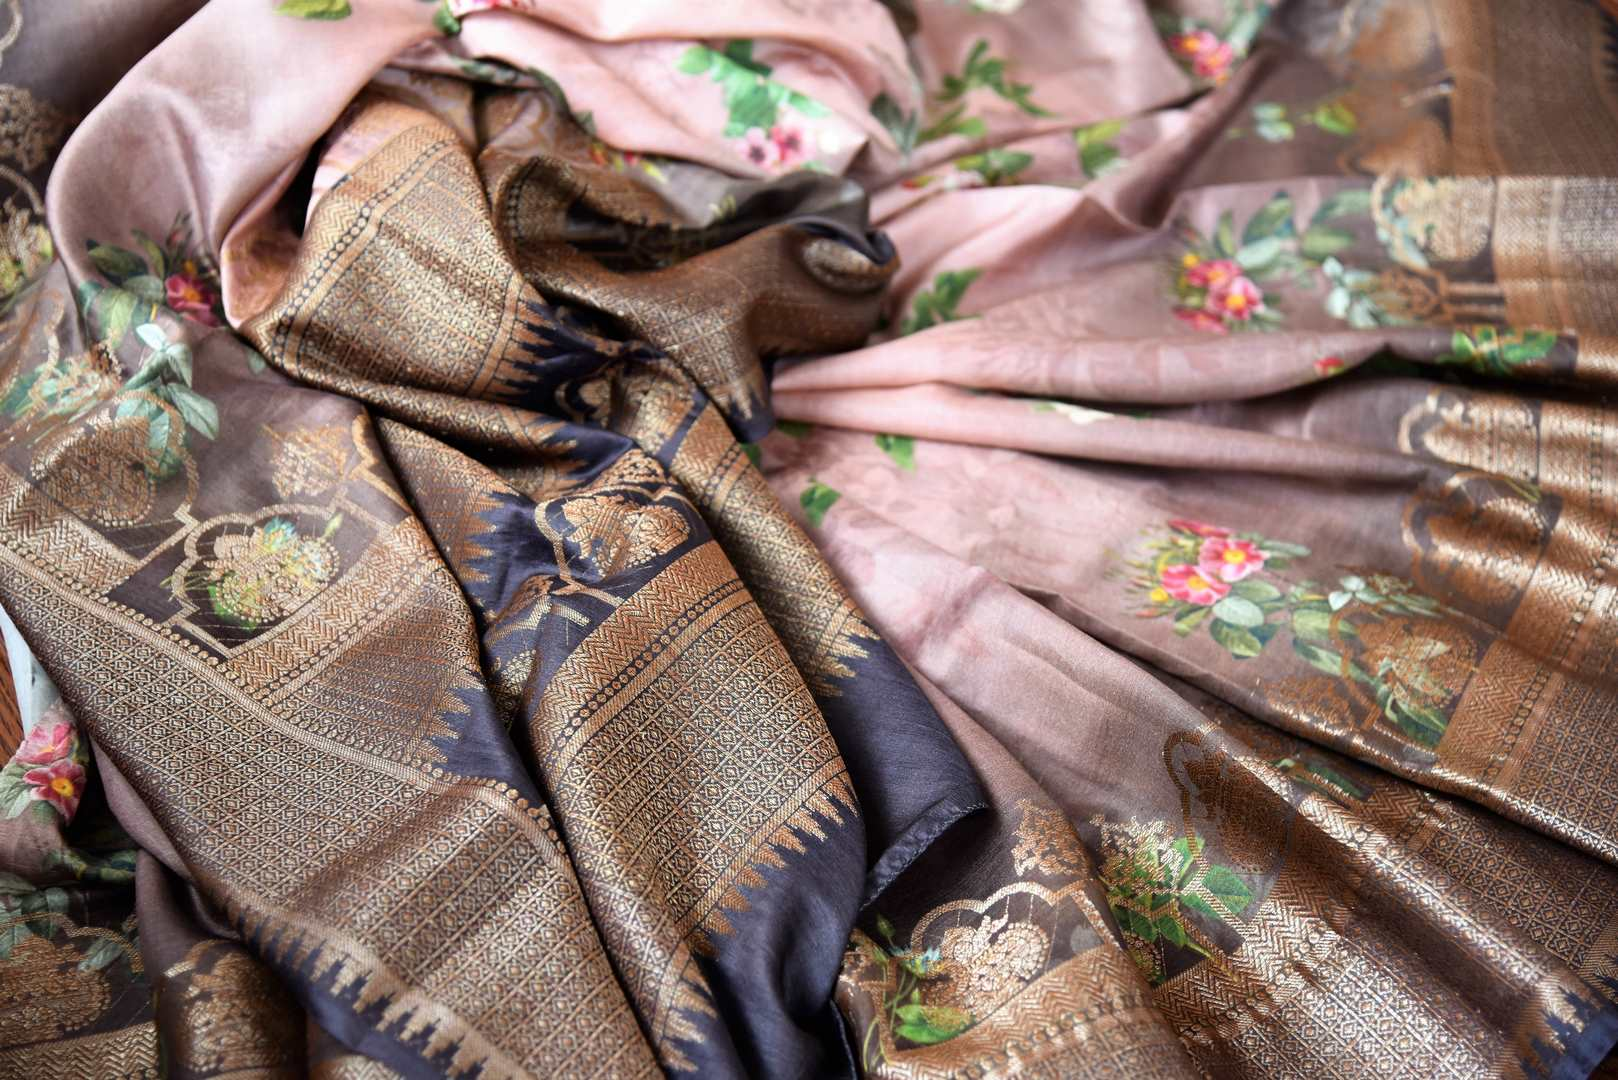 Buy brown printed muga Banarasi saree online in USA. The beautiful saree is a perfect choice for festive and special occasions. For more such Indian designer sarees in USA, shop from the exquisite collection at Pure Elegance Indian clothing store.-details